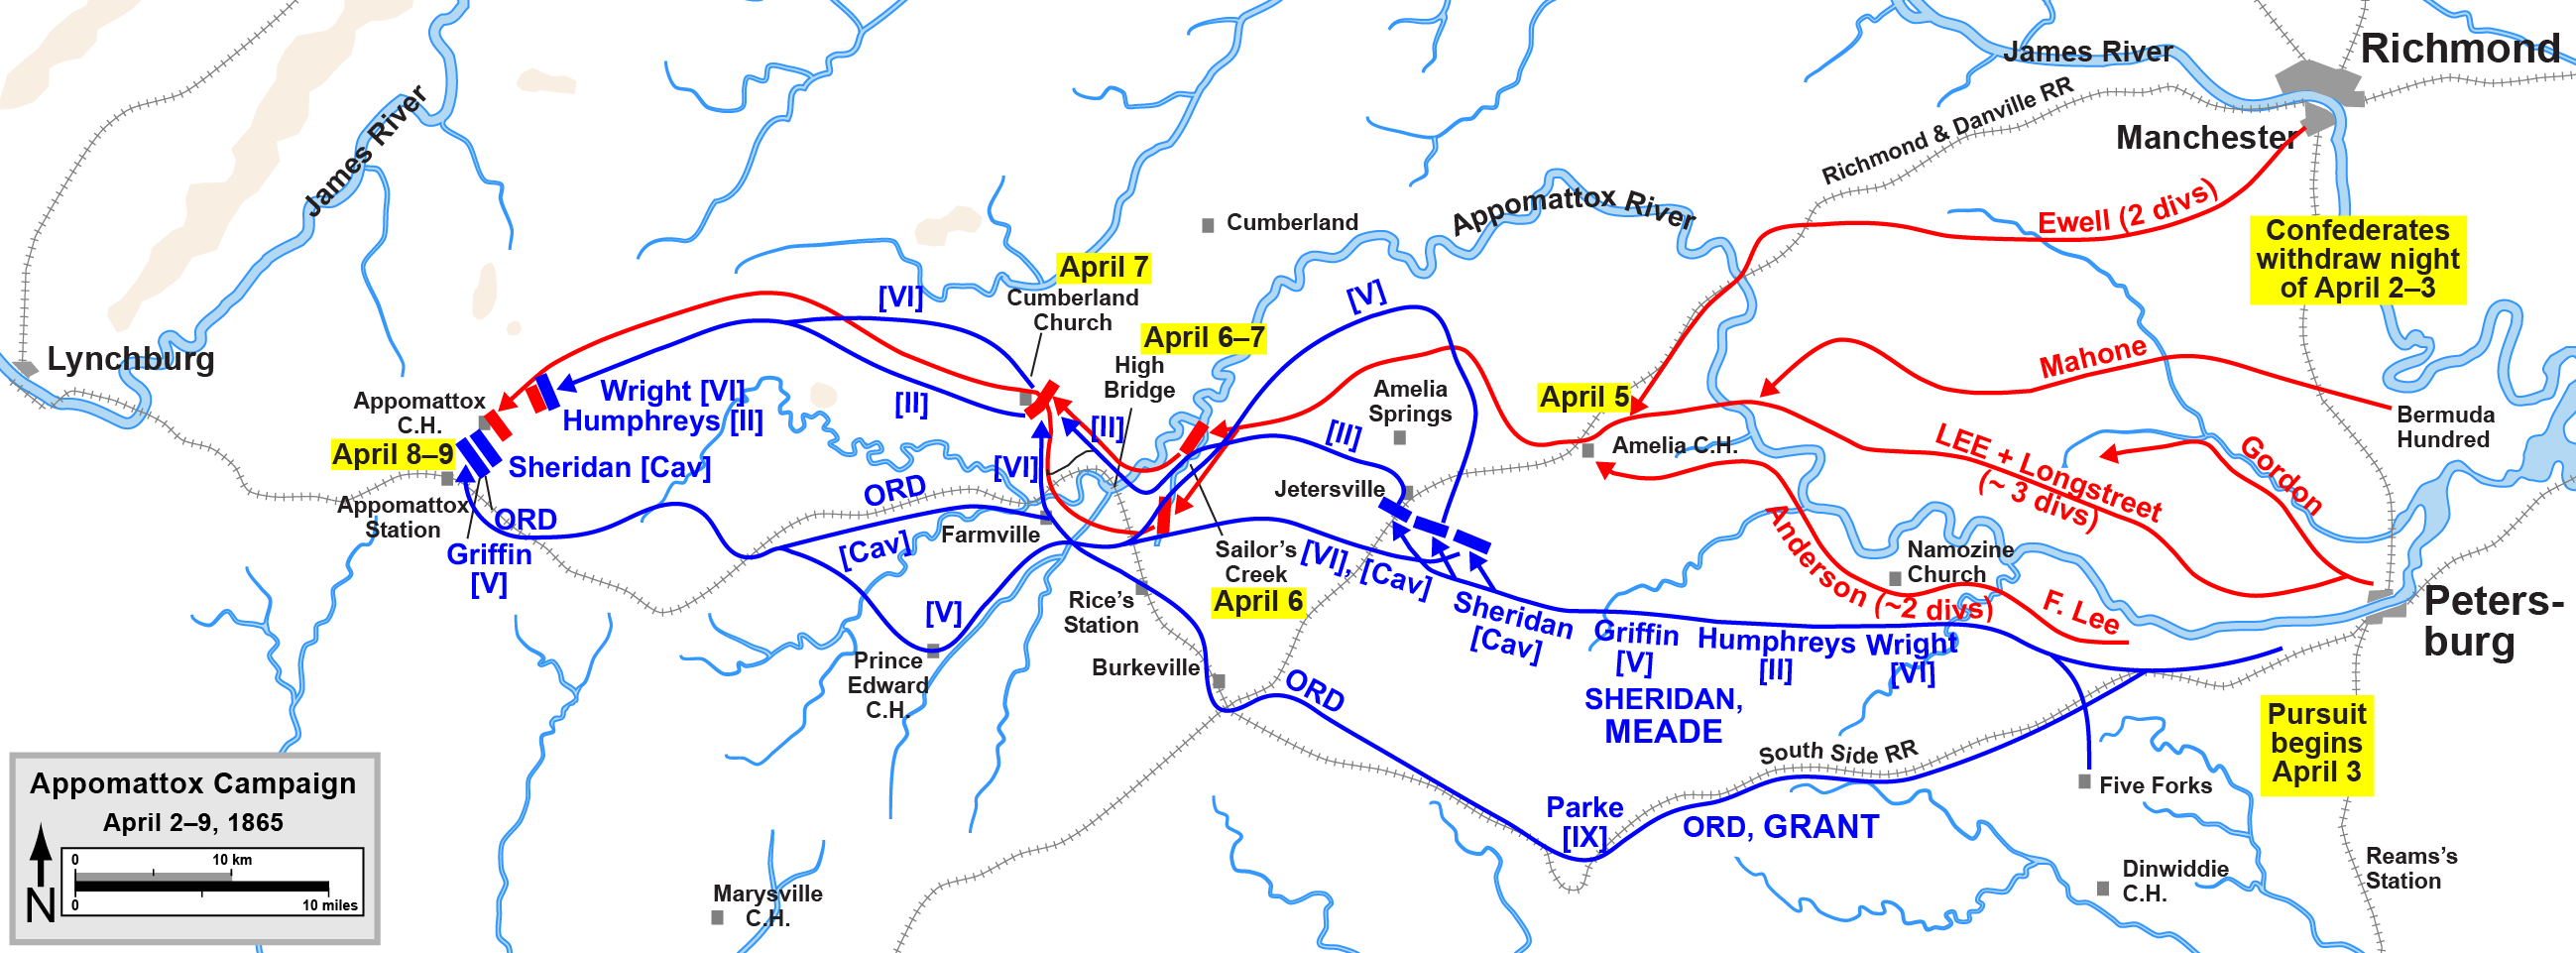 FileAppomattox Campaign Overviewpng Wikimedia Commons